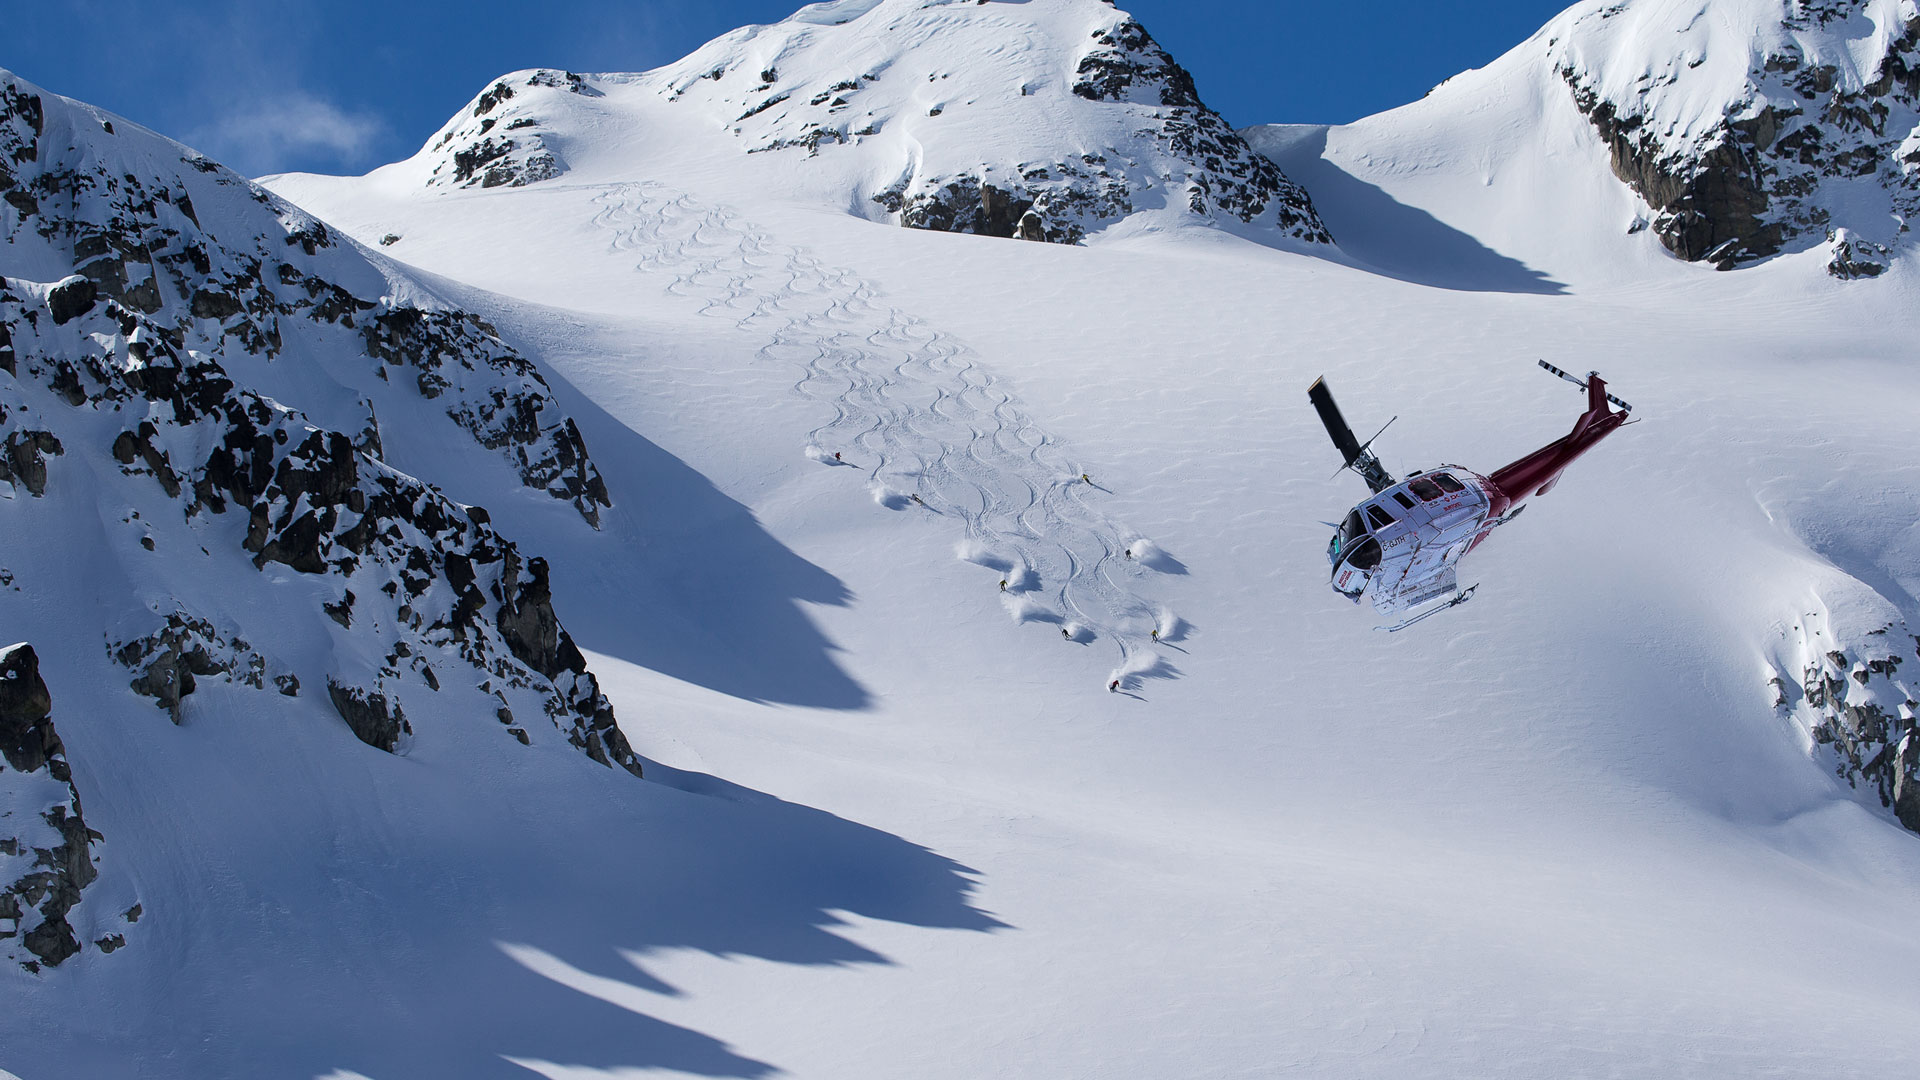 banff heli skiing with Whistler Vacation Packages on 488 further Crans Montana as well Banff National Park likewise Banff National Park also Hiking Johnston Canyon Banff National Park.